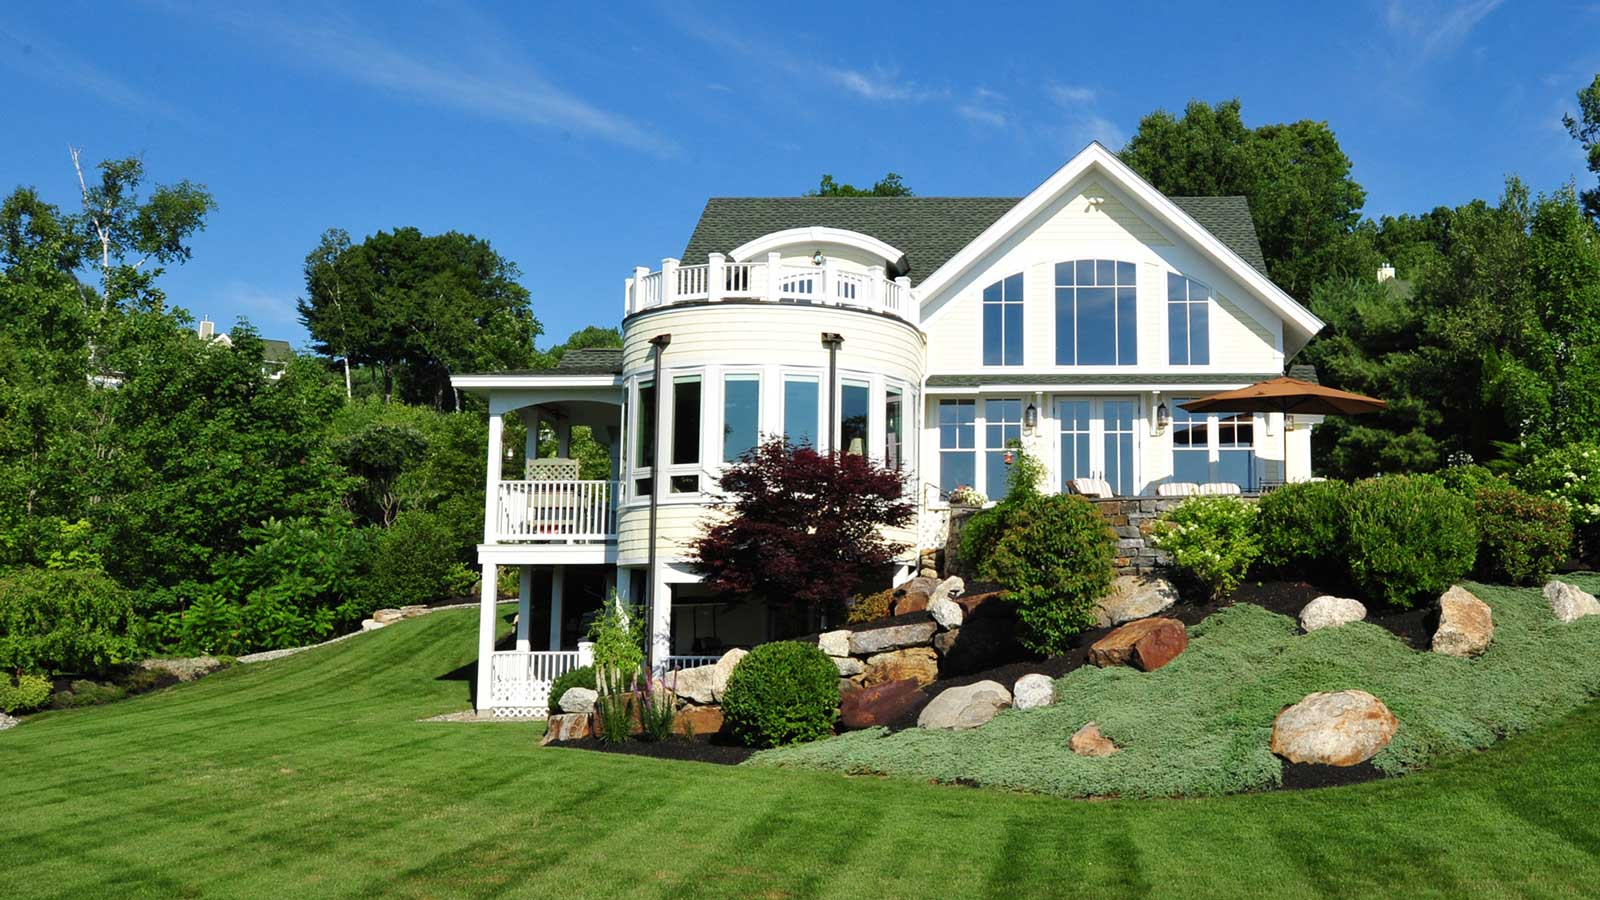 New Home Design & Construction | Cormack Construction NH